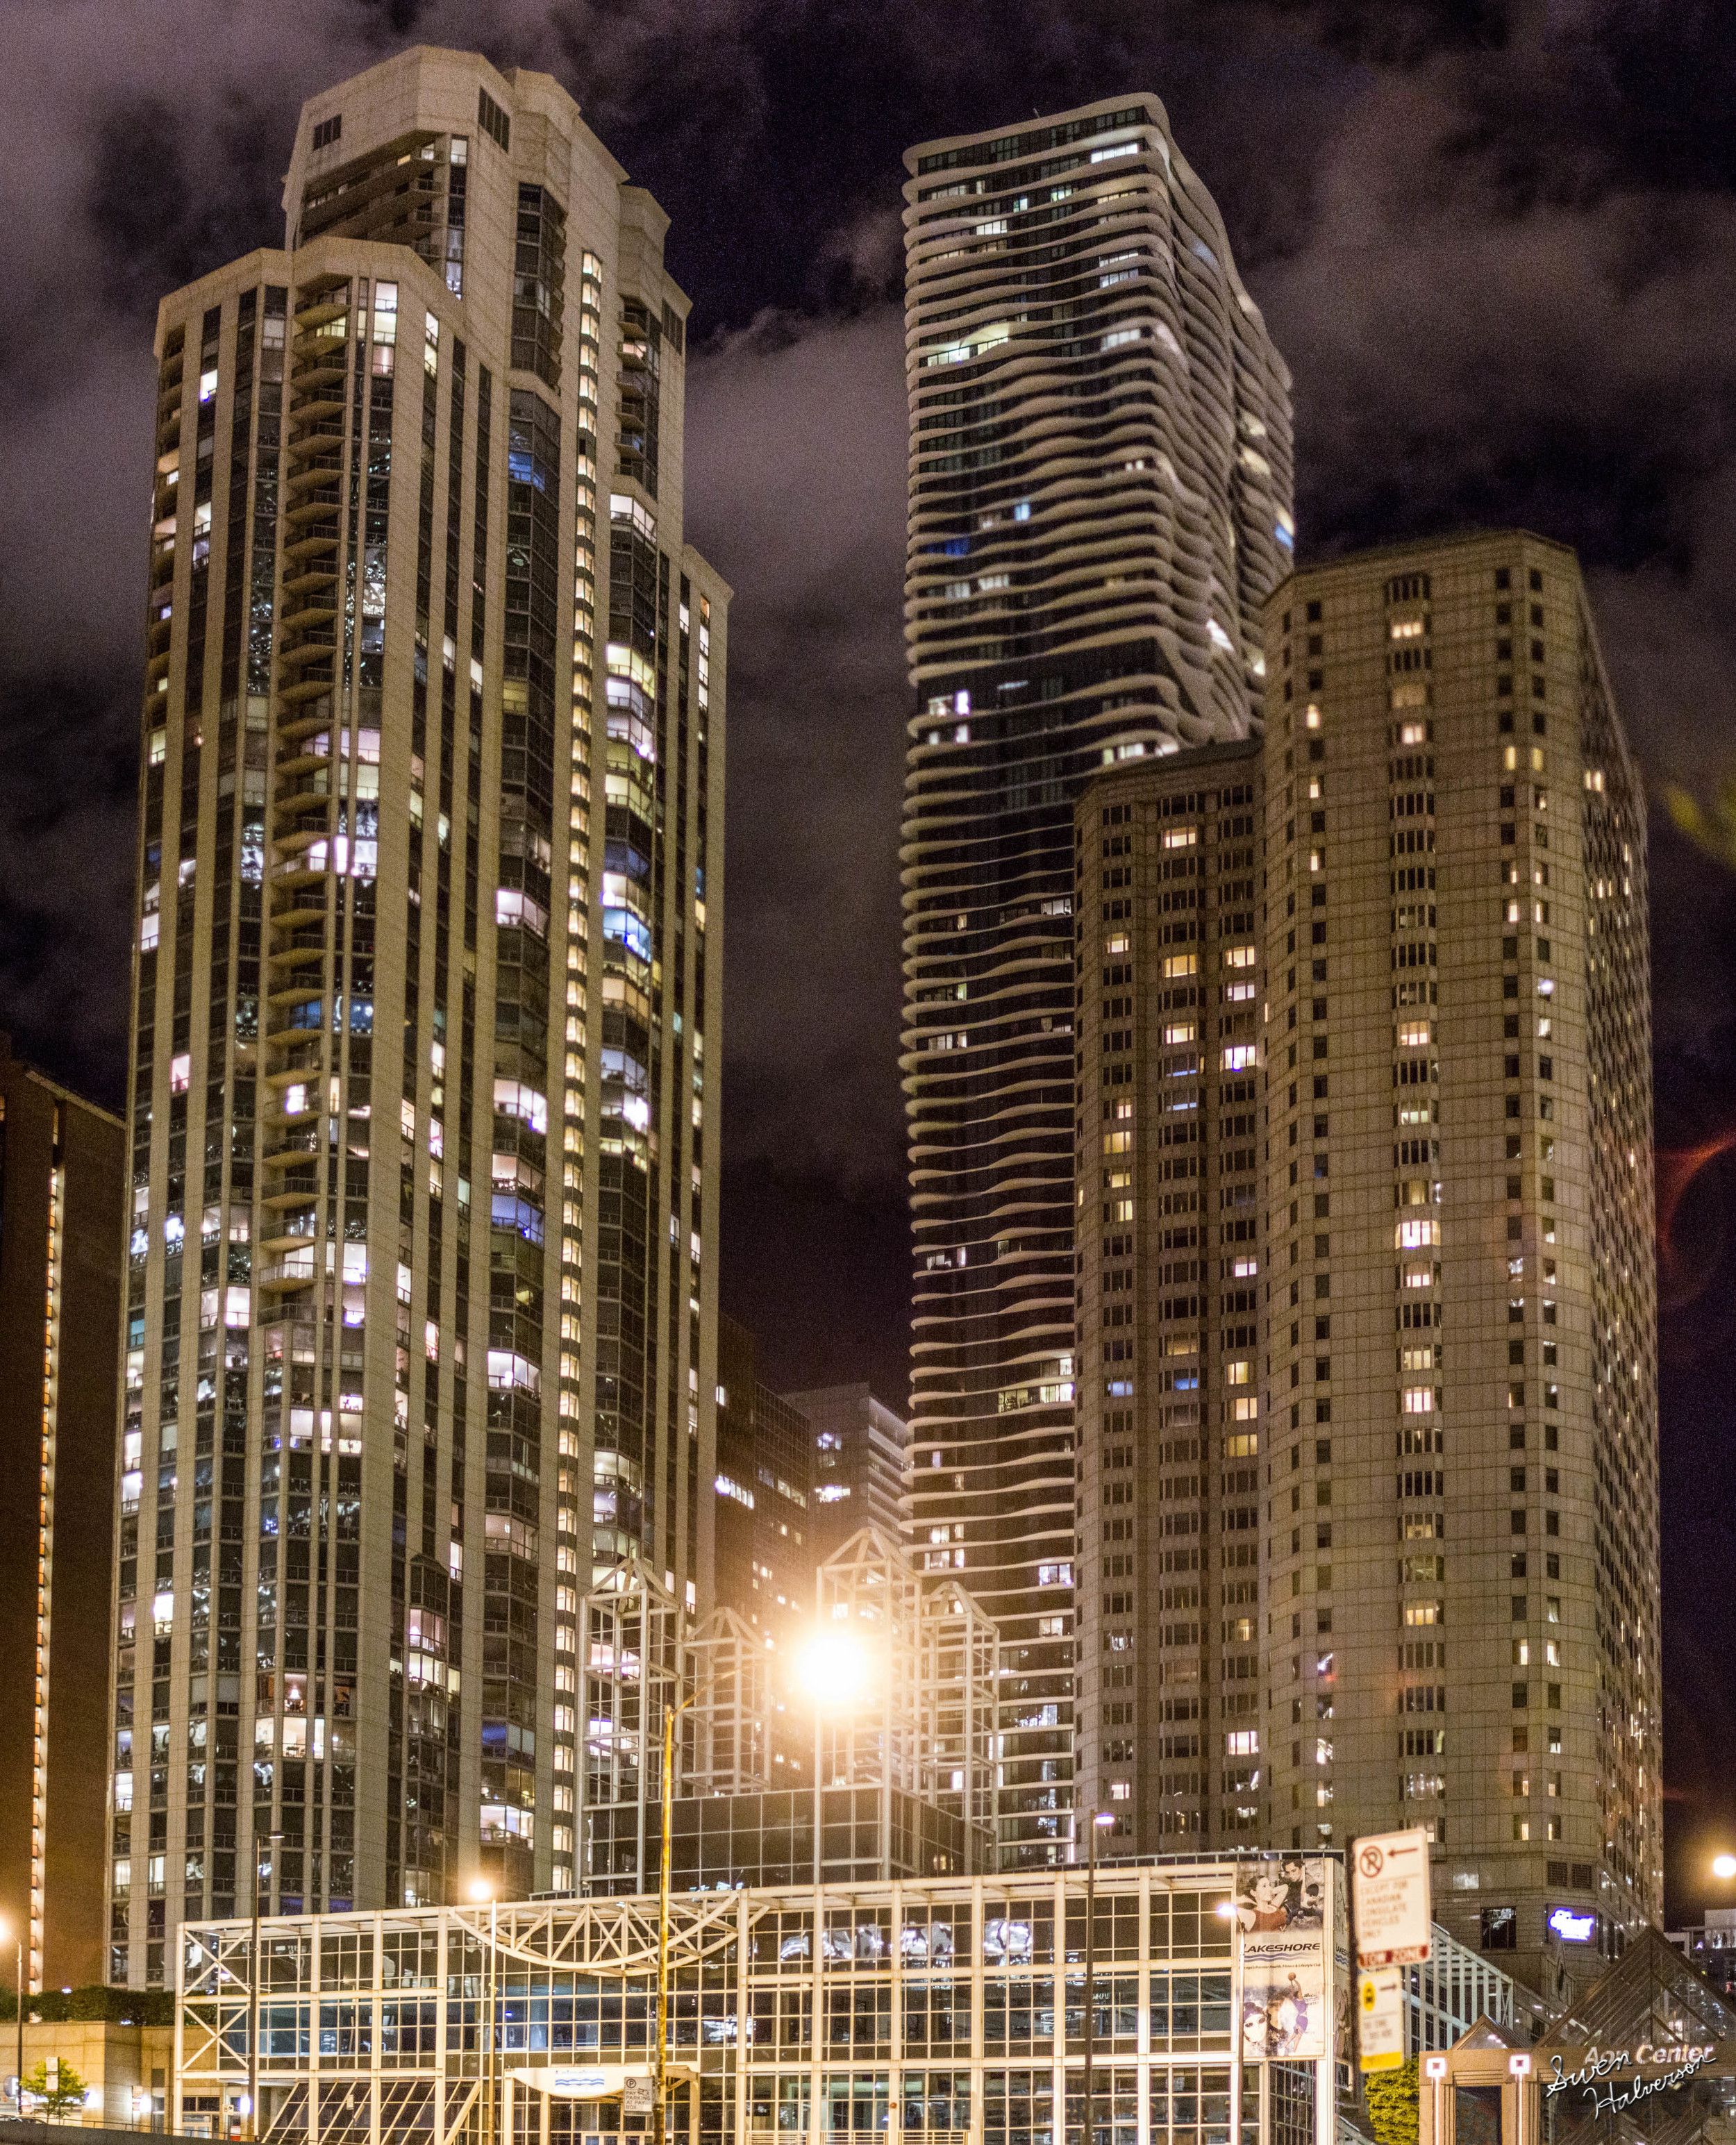 Theme: City | Title: Chicago Night 2